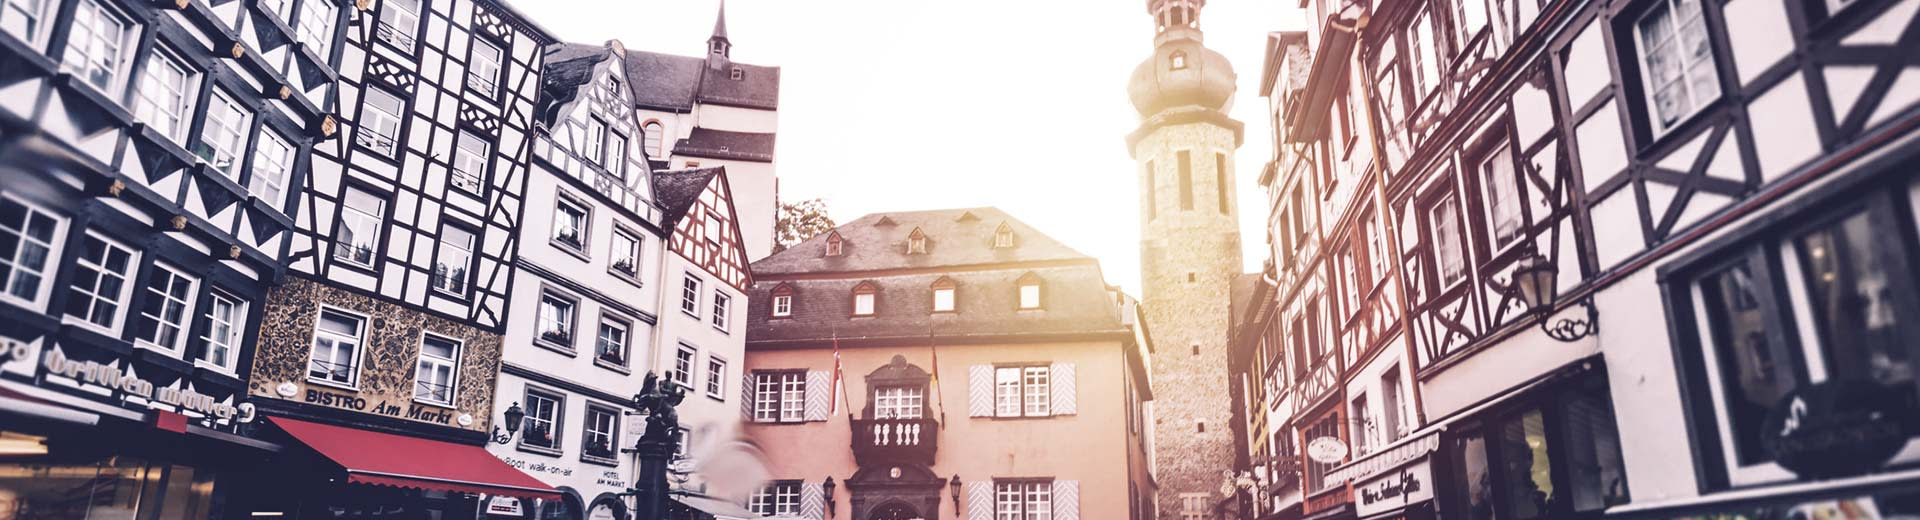 A historic and beautiful old town square in the city of Mainz